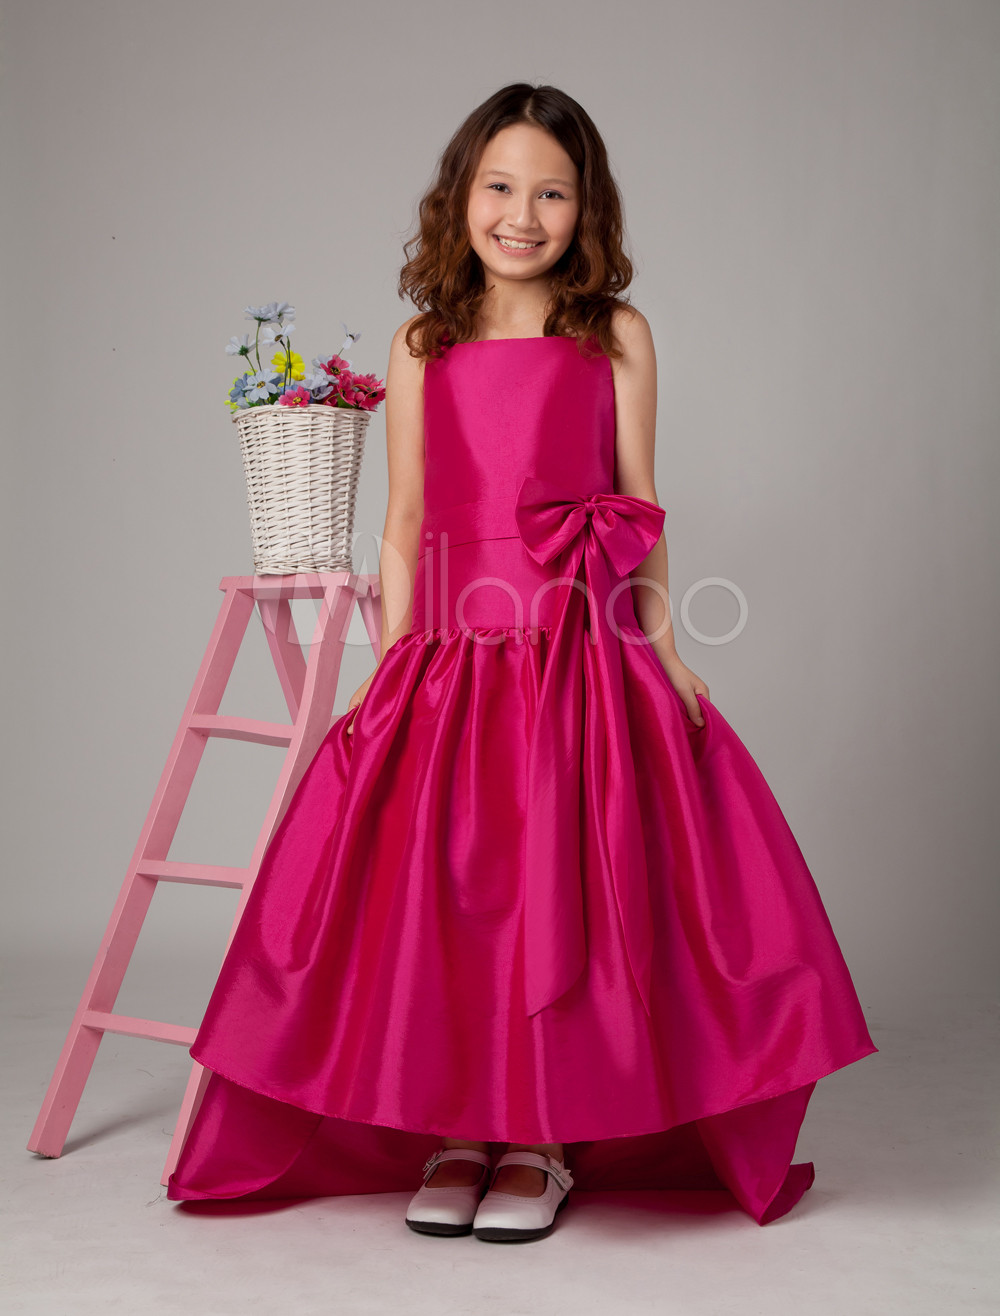 Flower Girl Dress Hot Pink Taffeta A Line Bow Toddler's Pageant Dress With Train